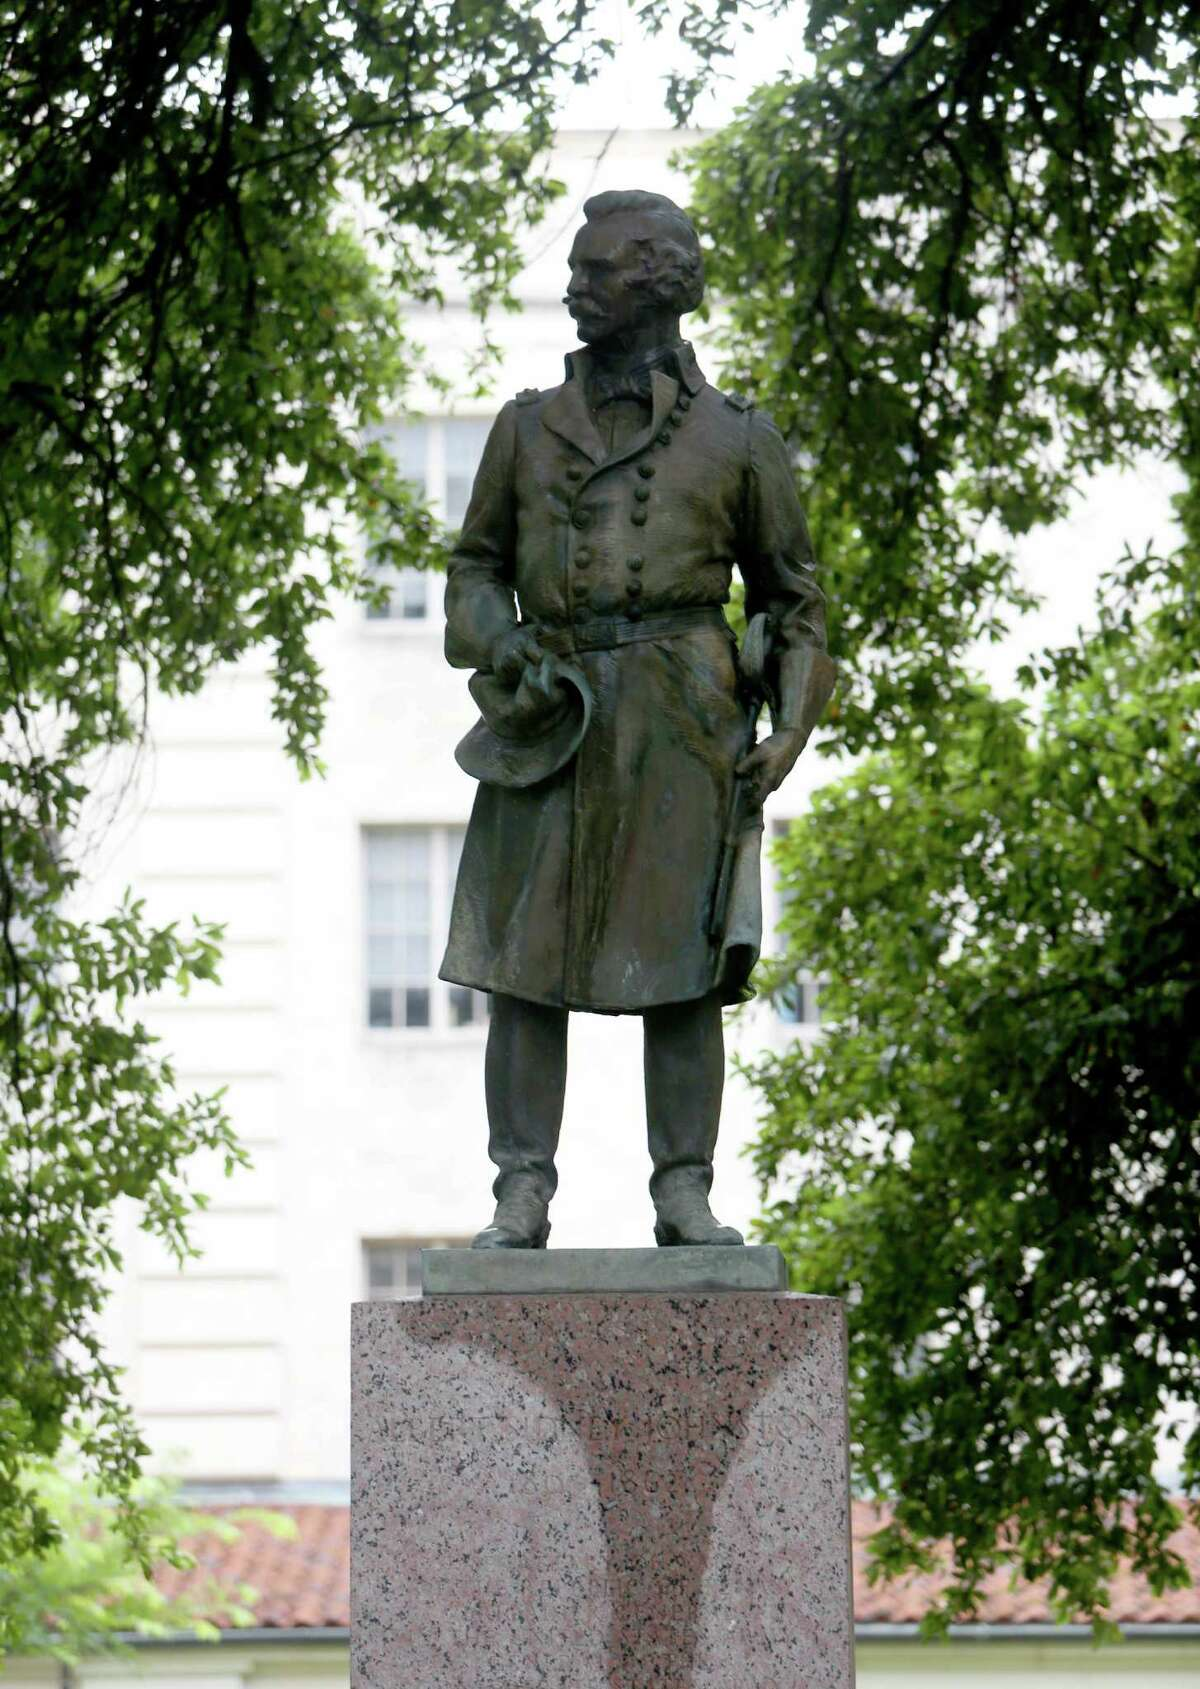 Statue of Albert Sidney Johnston 1803-1862, Commander of the U.S. Army, Confederate States Army, on the main campus of the University of Texas at Austin Tuesday, June 30, 2015, in Austin, Texas.